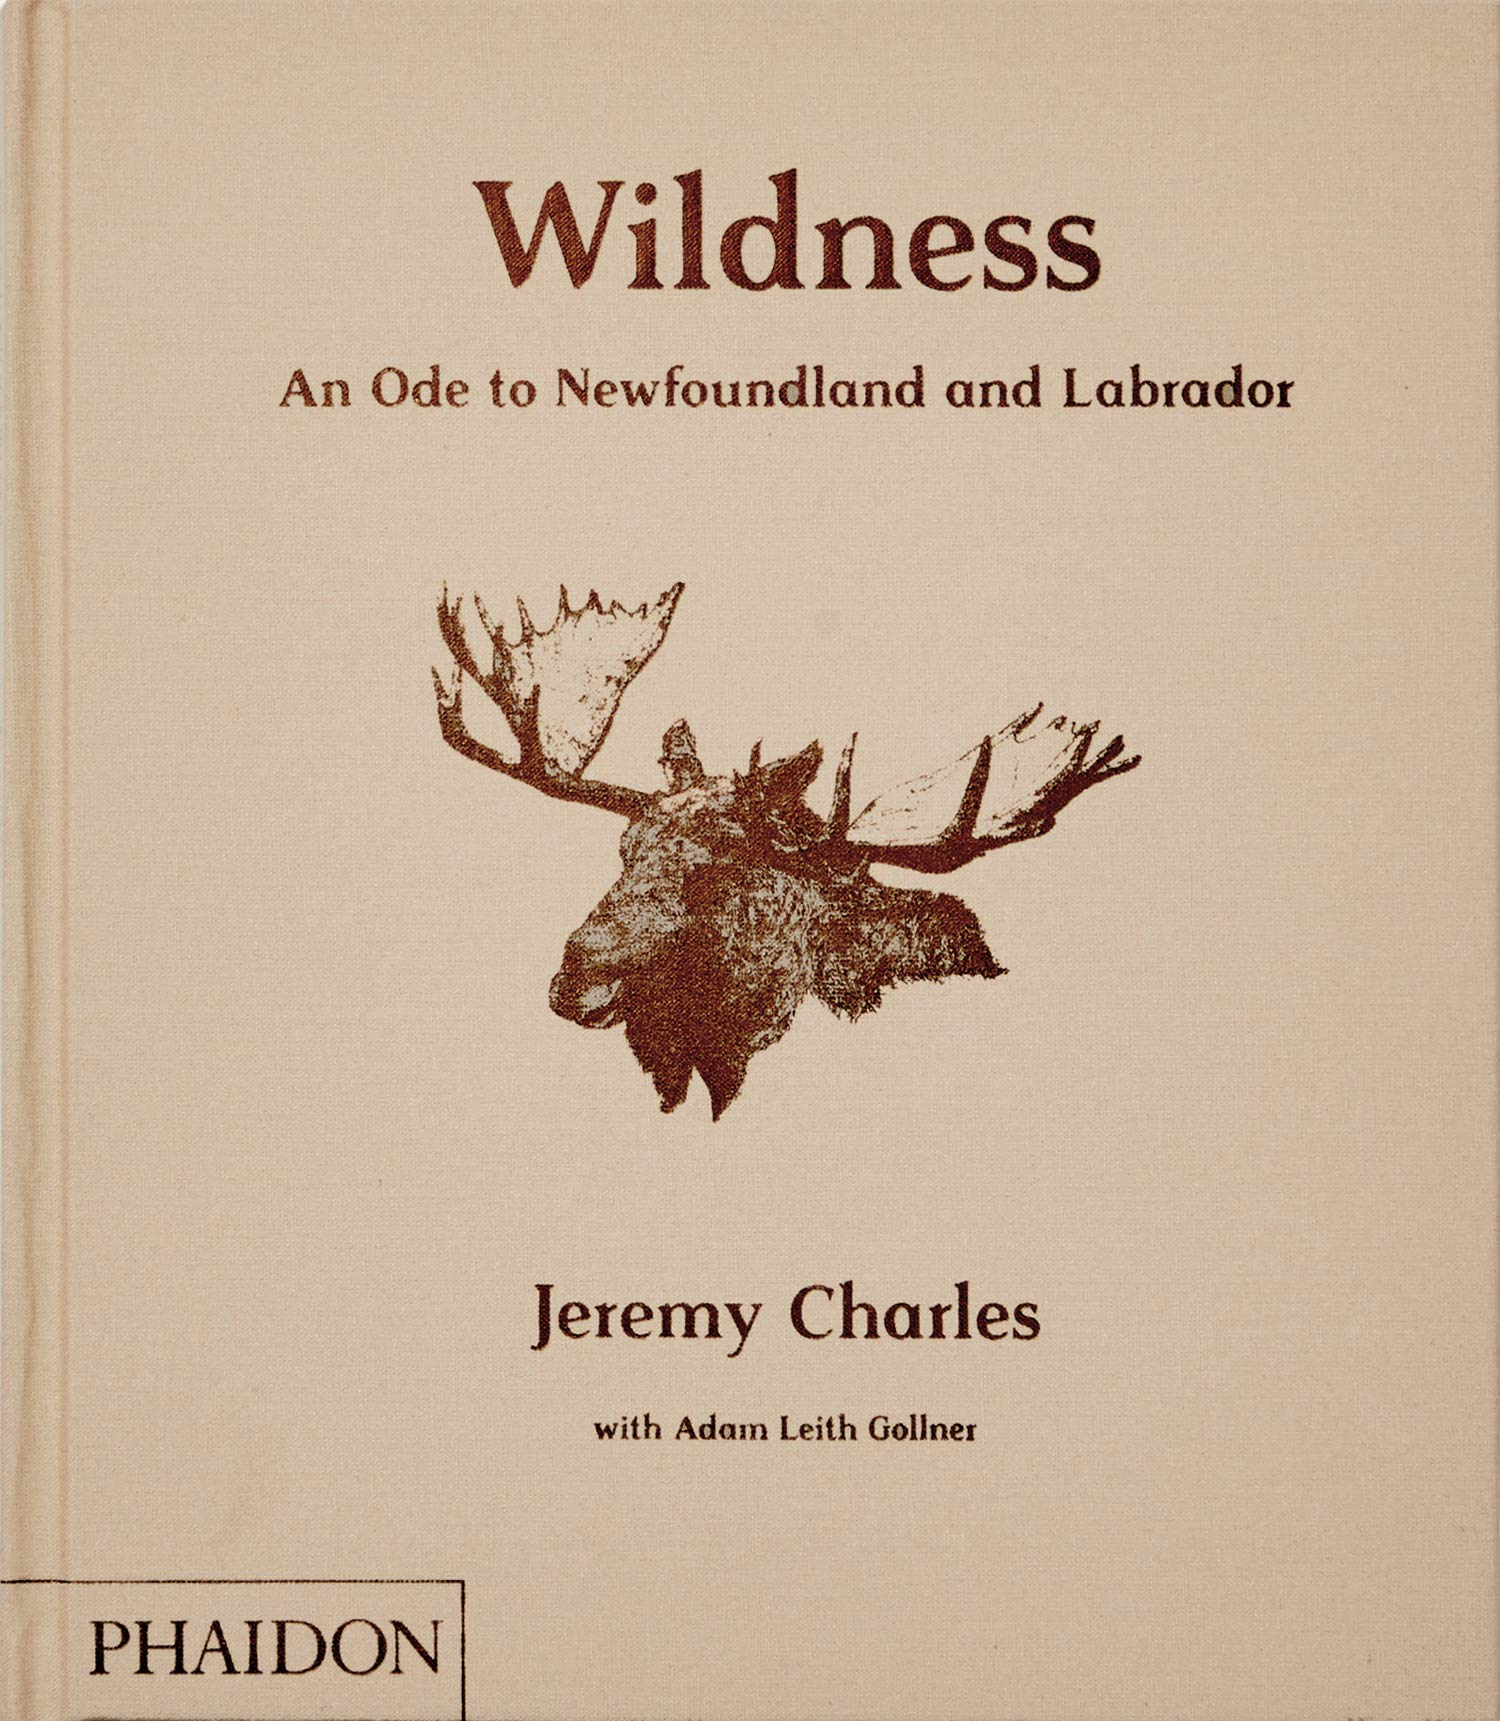 Jeremy Charles: Wildness. An Ode to Newfoundland and Labrador. Phaidon Press Limited, London und New York 2019, 266 S., Ganzleinen, Hardcover, 55 Euro (in englischer Sprache)